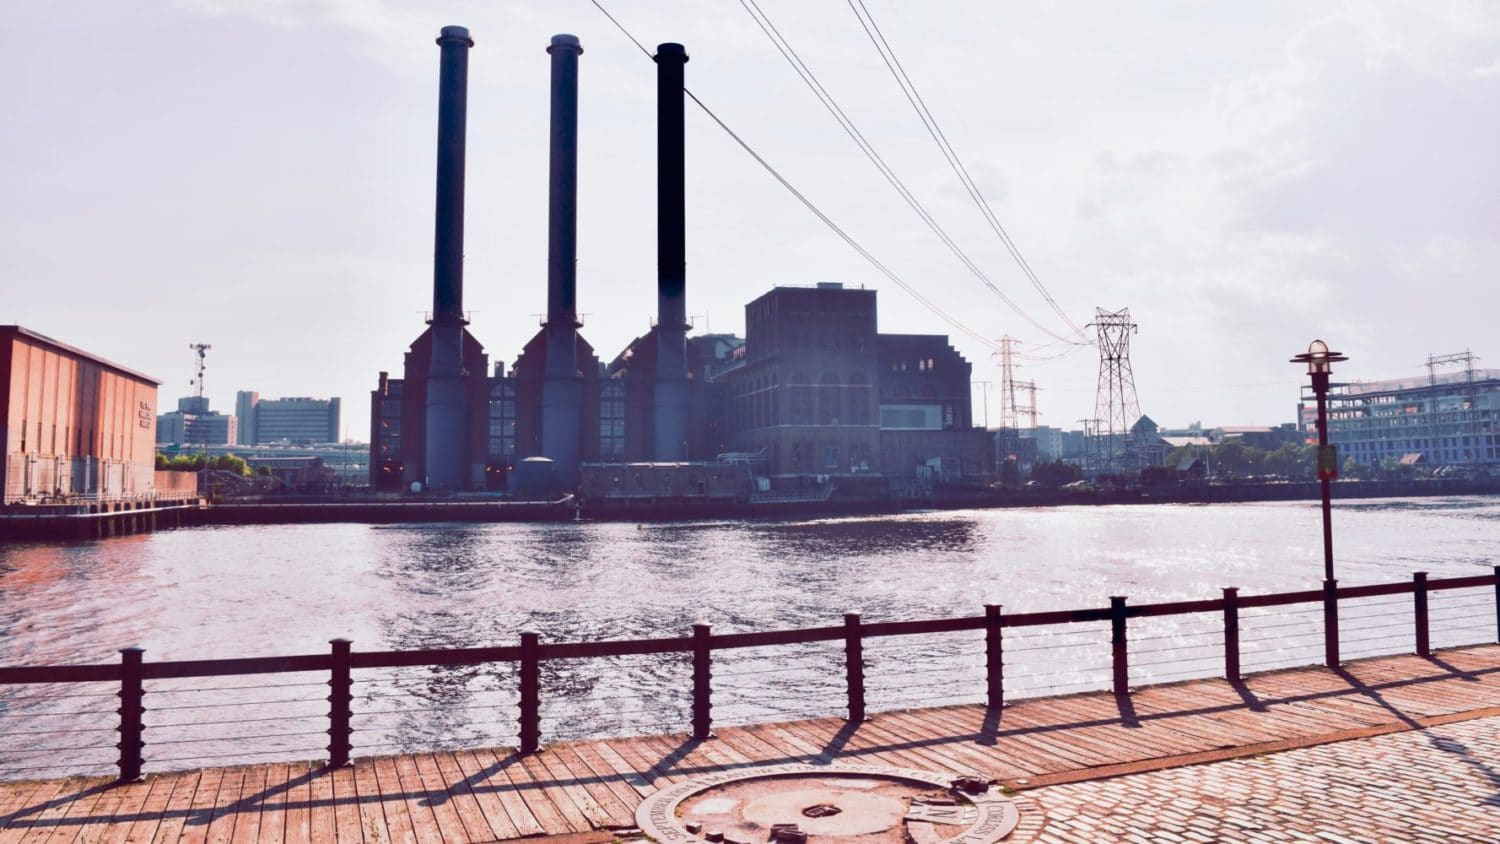 Photo for Starwood Energy Group to acquire Manchester Street Power Station from Dominion as part of a $1.23 billion deal